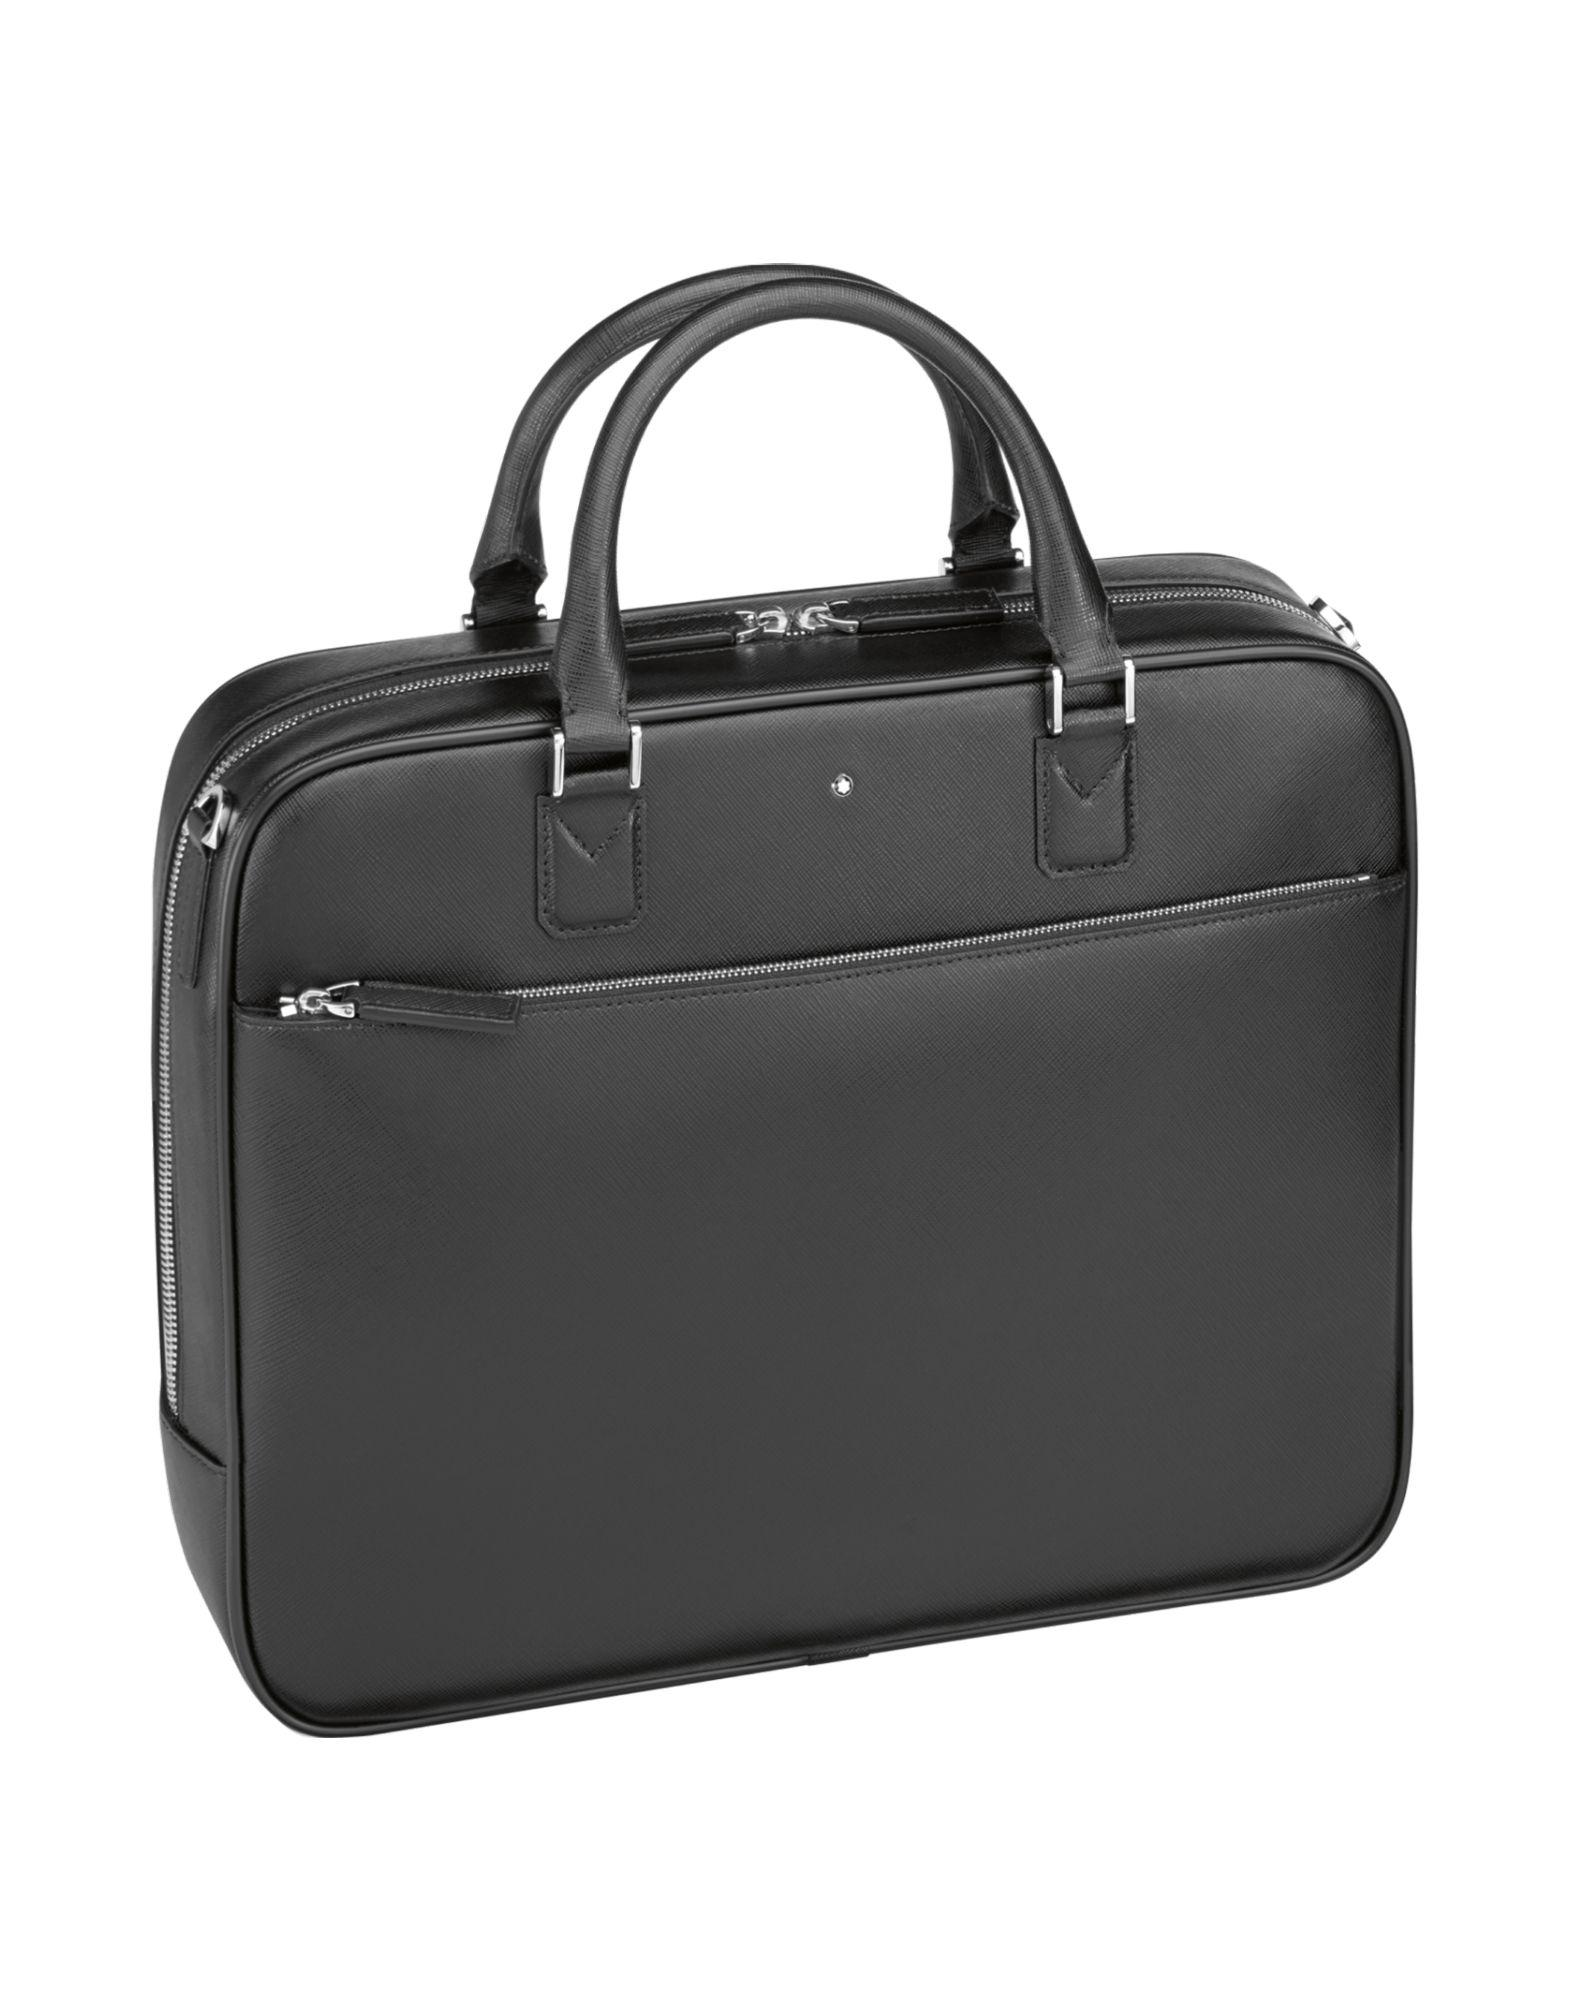 lyst montblanc work bags in black for men. Black Bedroom Furniture Sets. Home Design Ideas